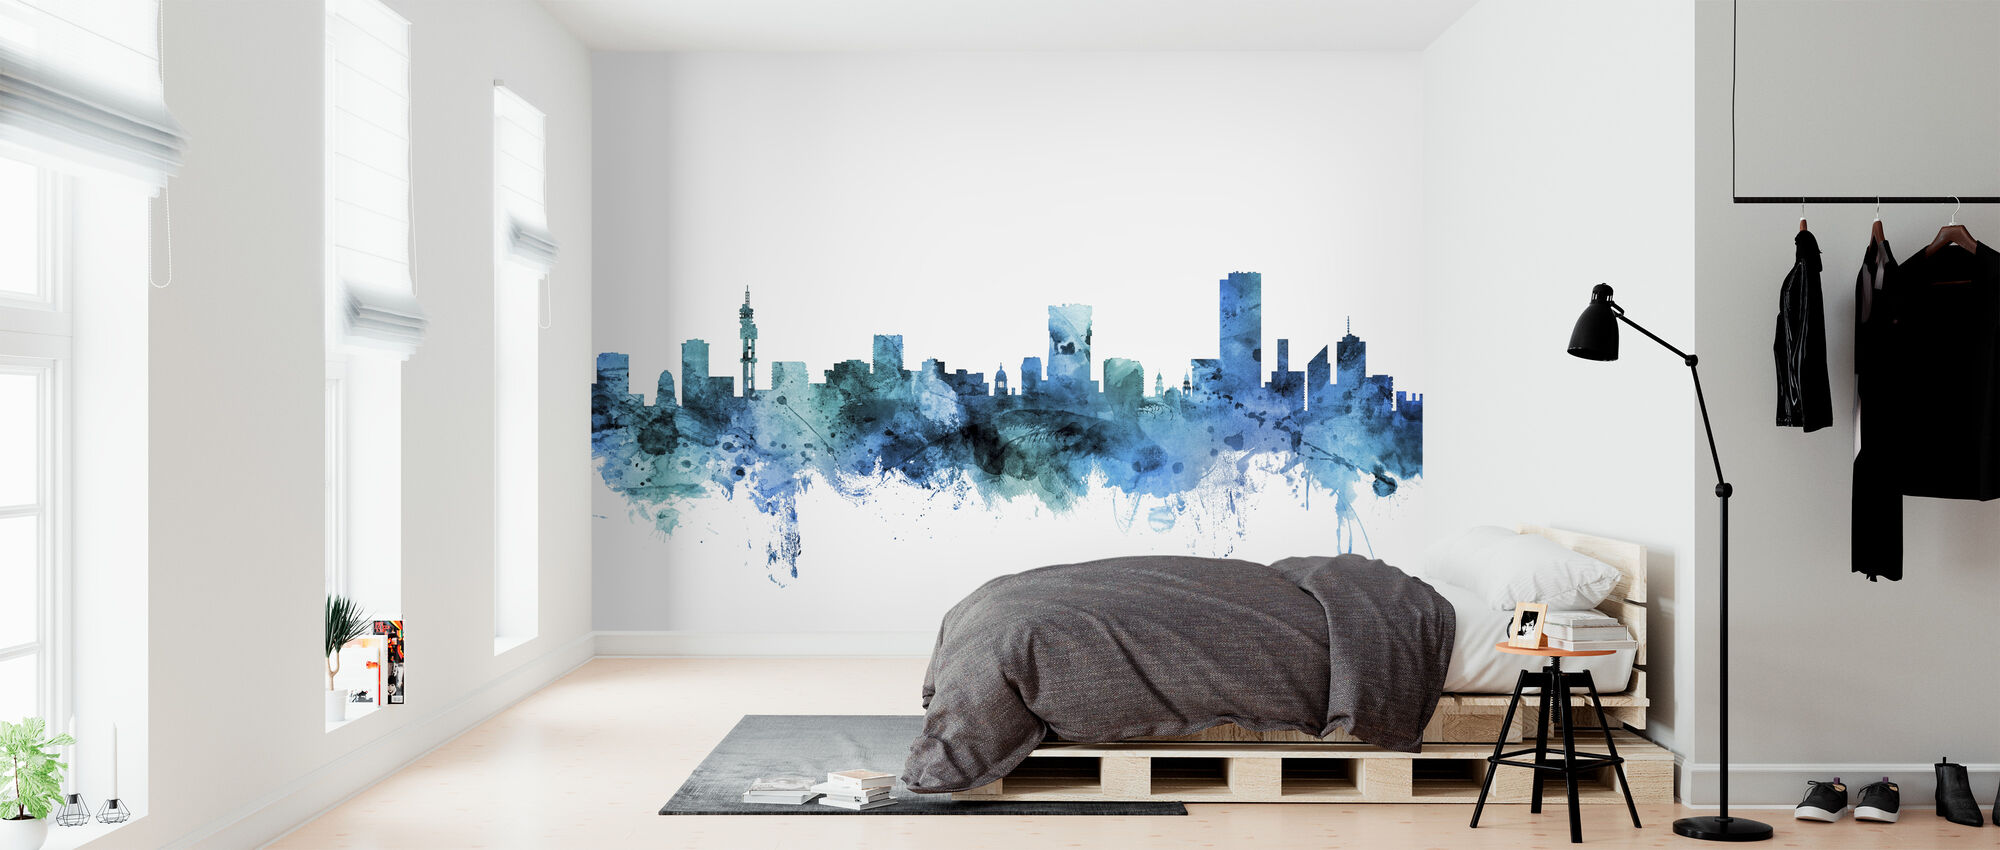 Pretoria South Africa Skyline - Wallpaper - Bedroom